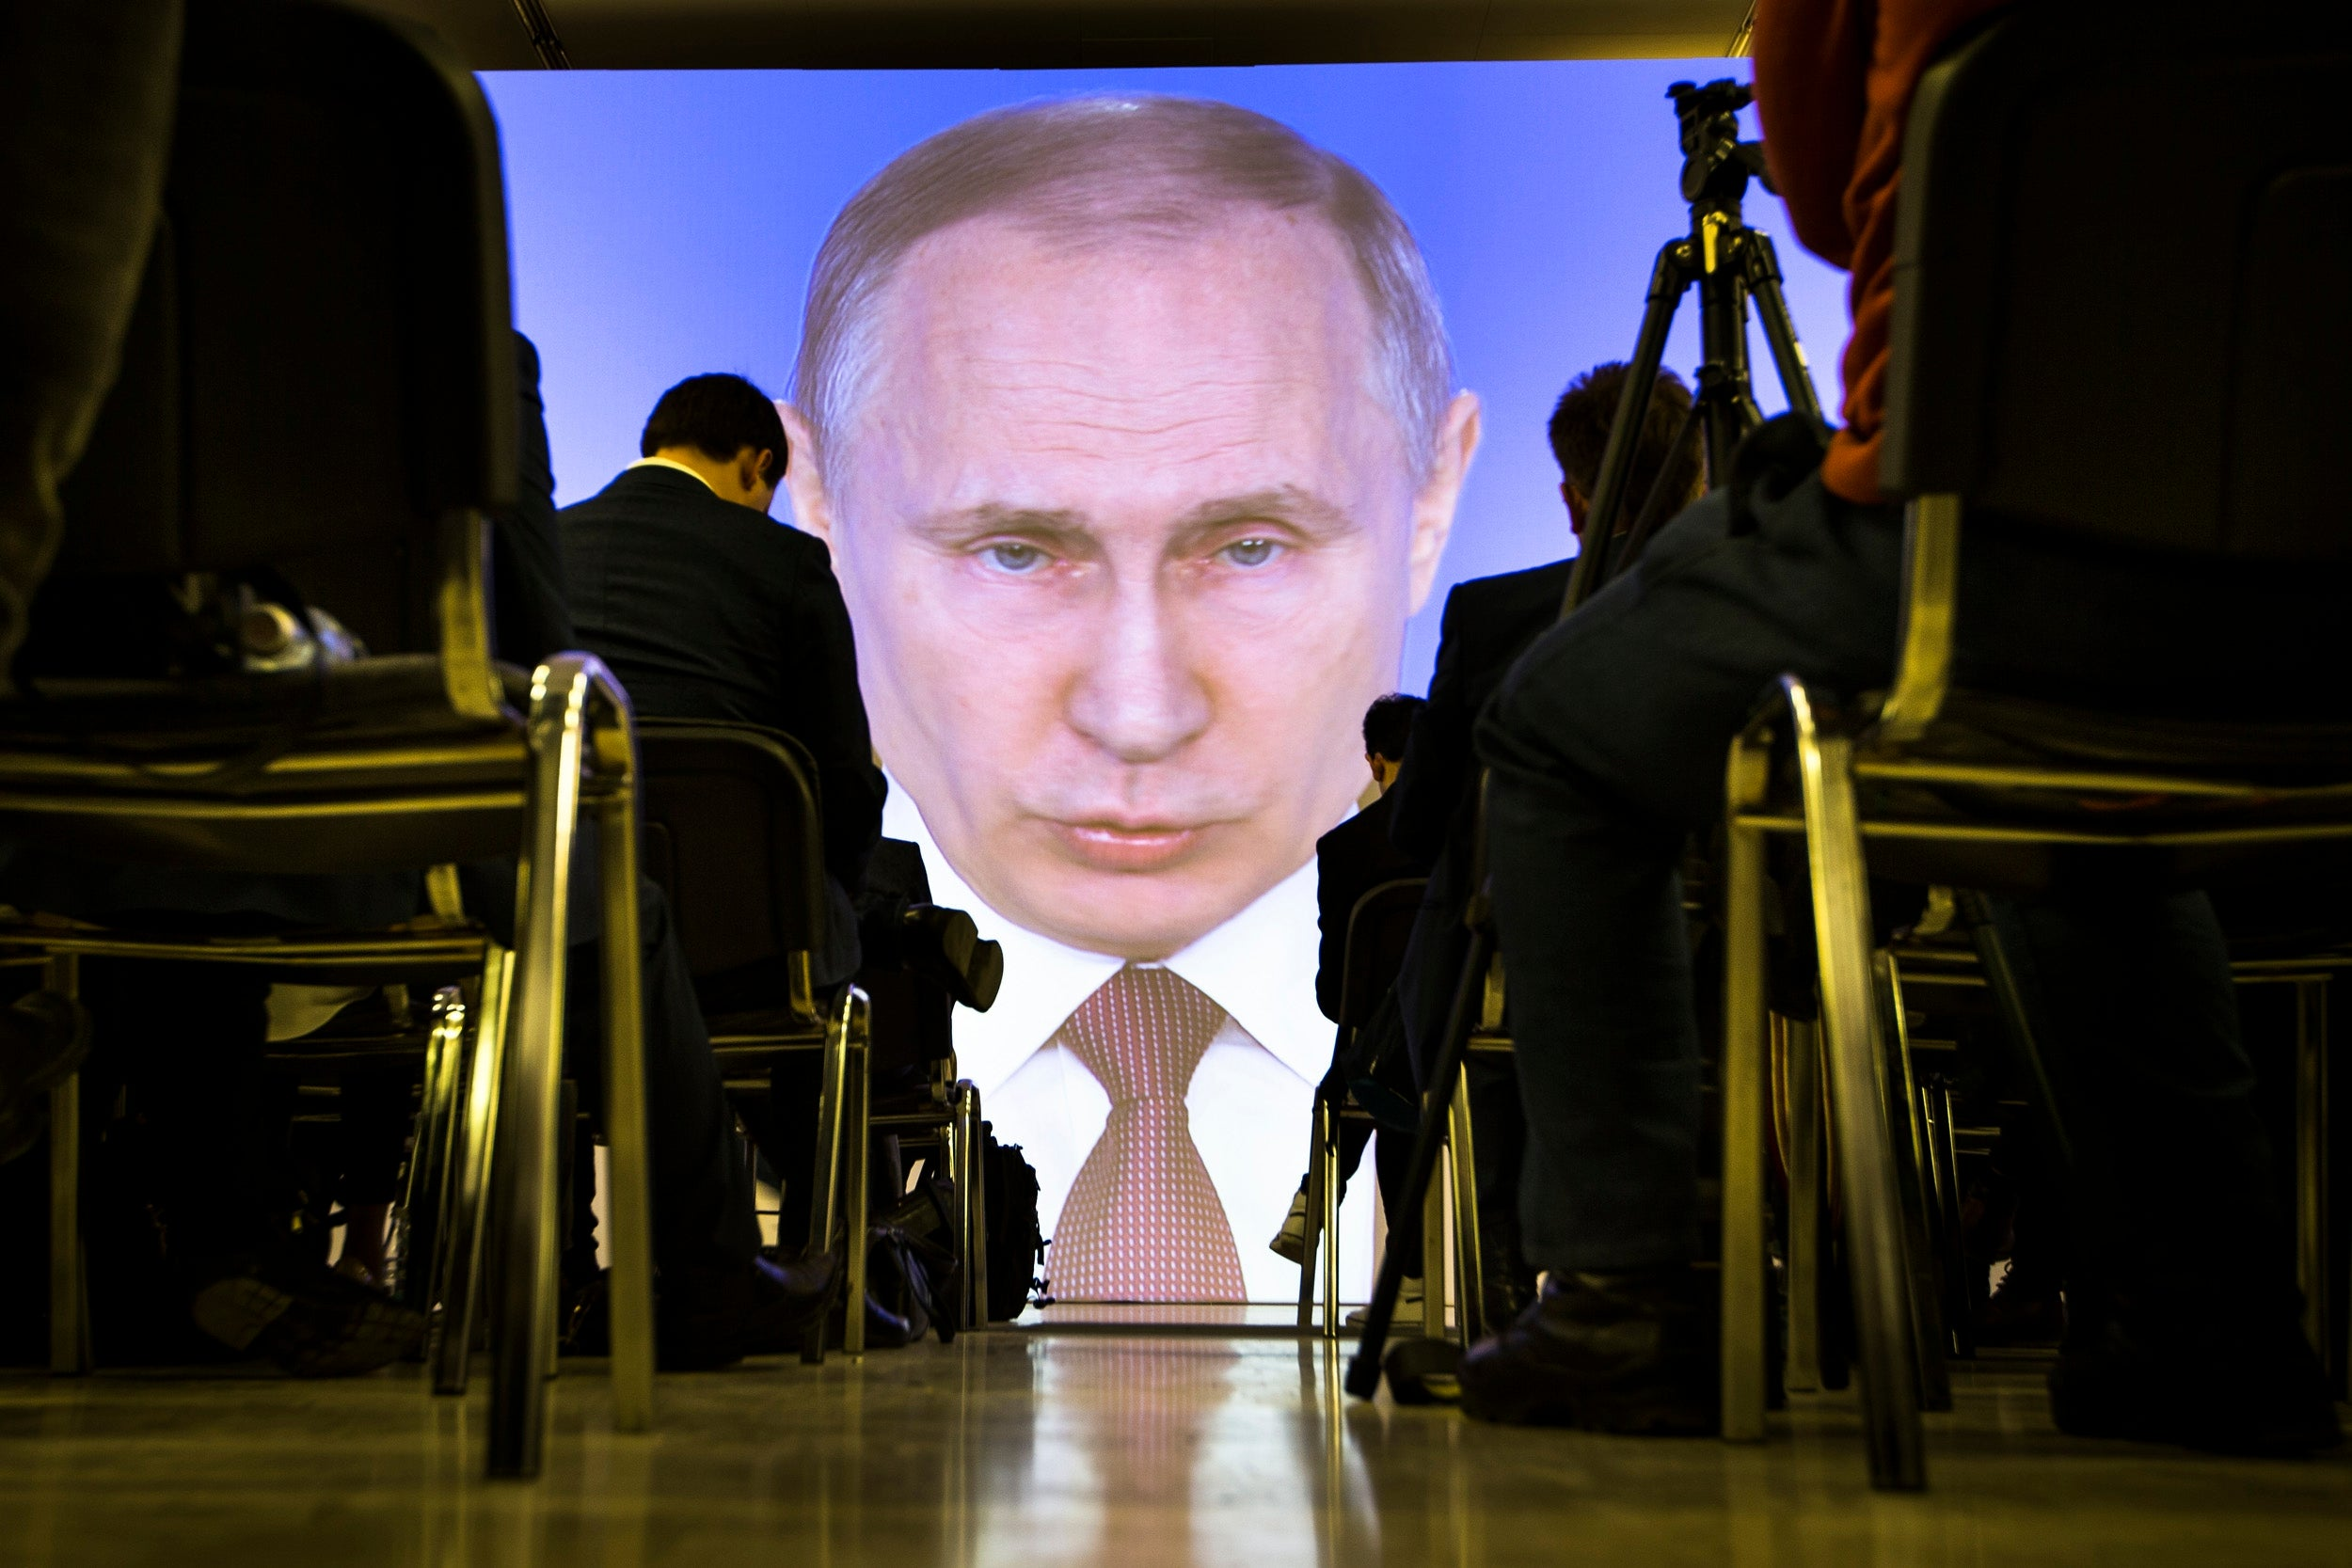 As President Putin boasts about enhancements to Russia's nuclear arsenal, the Department of Defense's new review of U.S. nuclear policy and capabilities calls for an end to decades of disarmament efforts and a return to a superpower arms race, not just with Russia but China, as well.